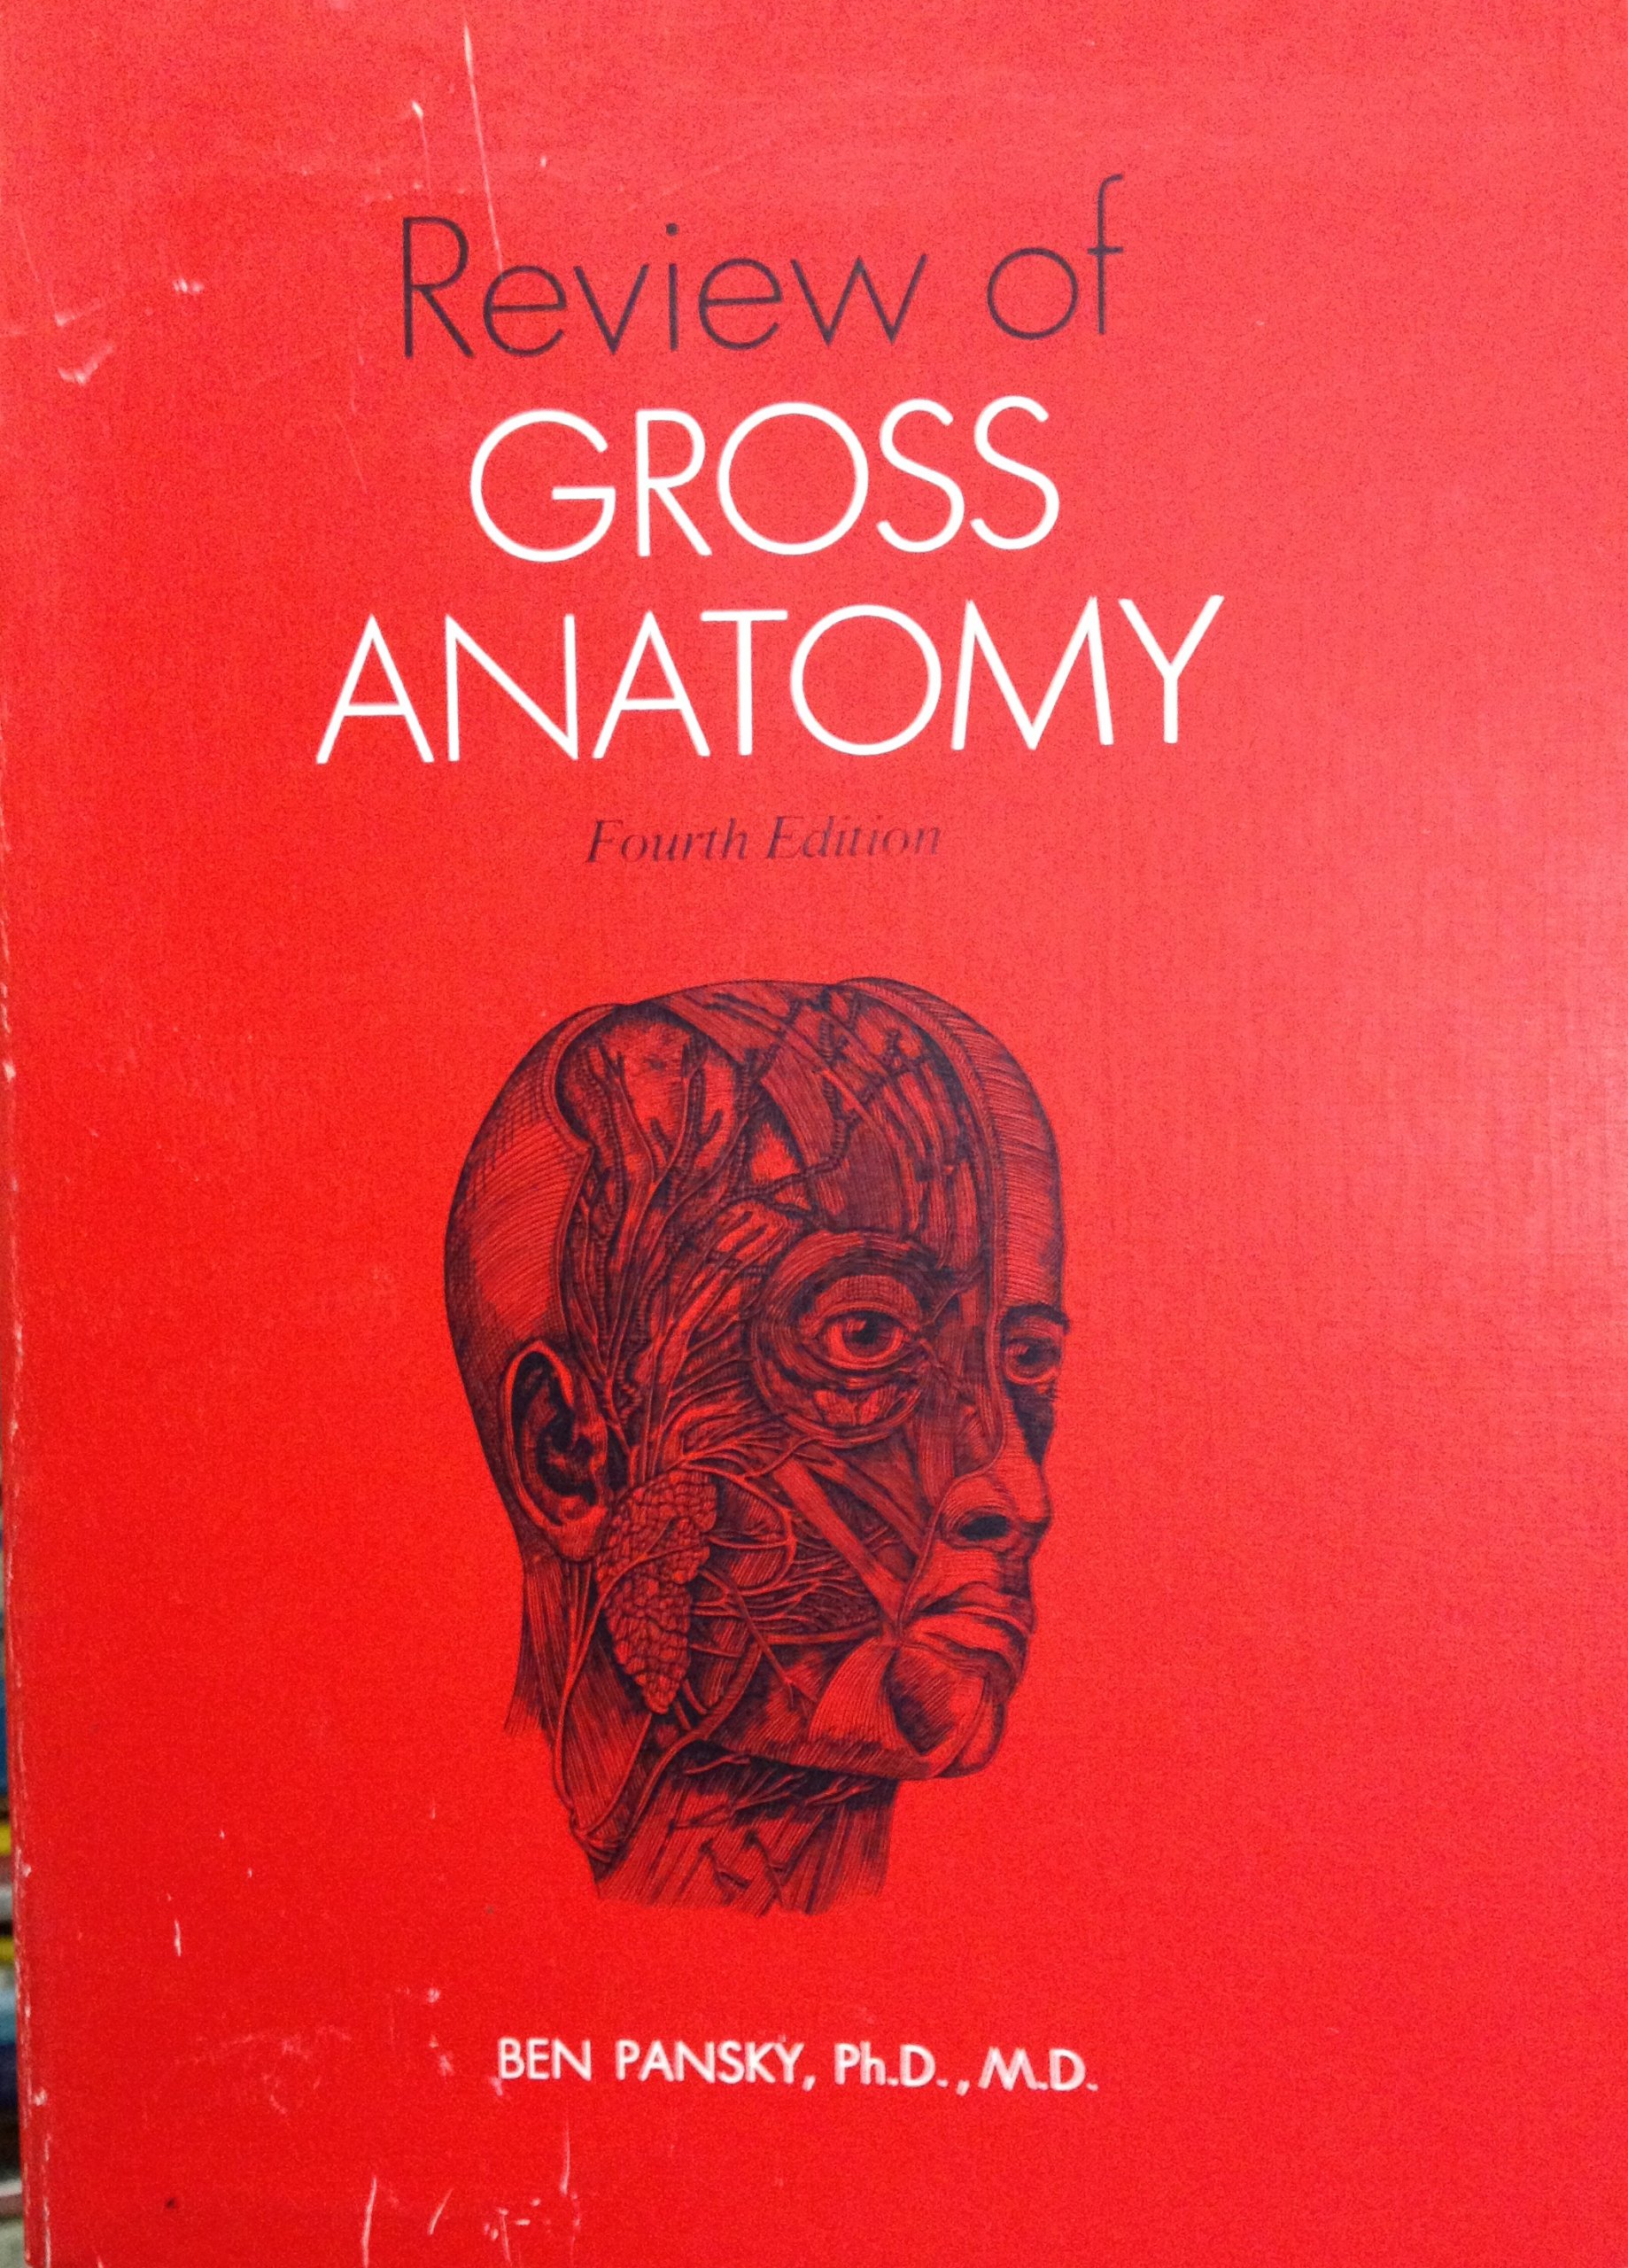 Review Of Gross Anatomy Ben Pansky Earl Lawrence House